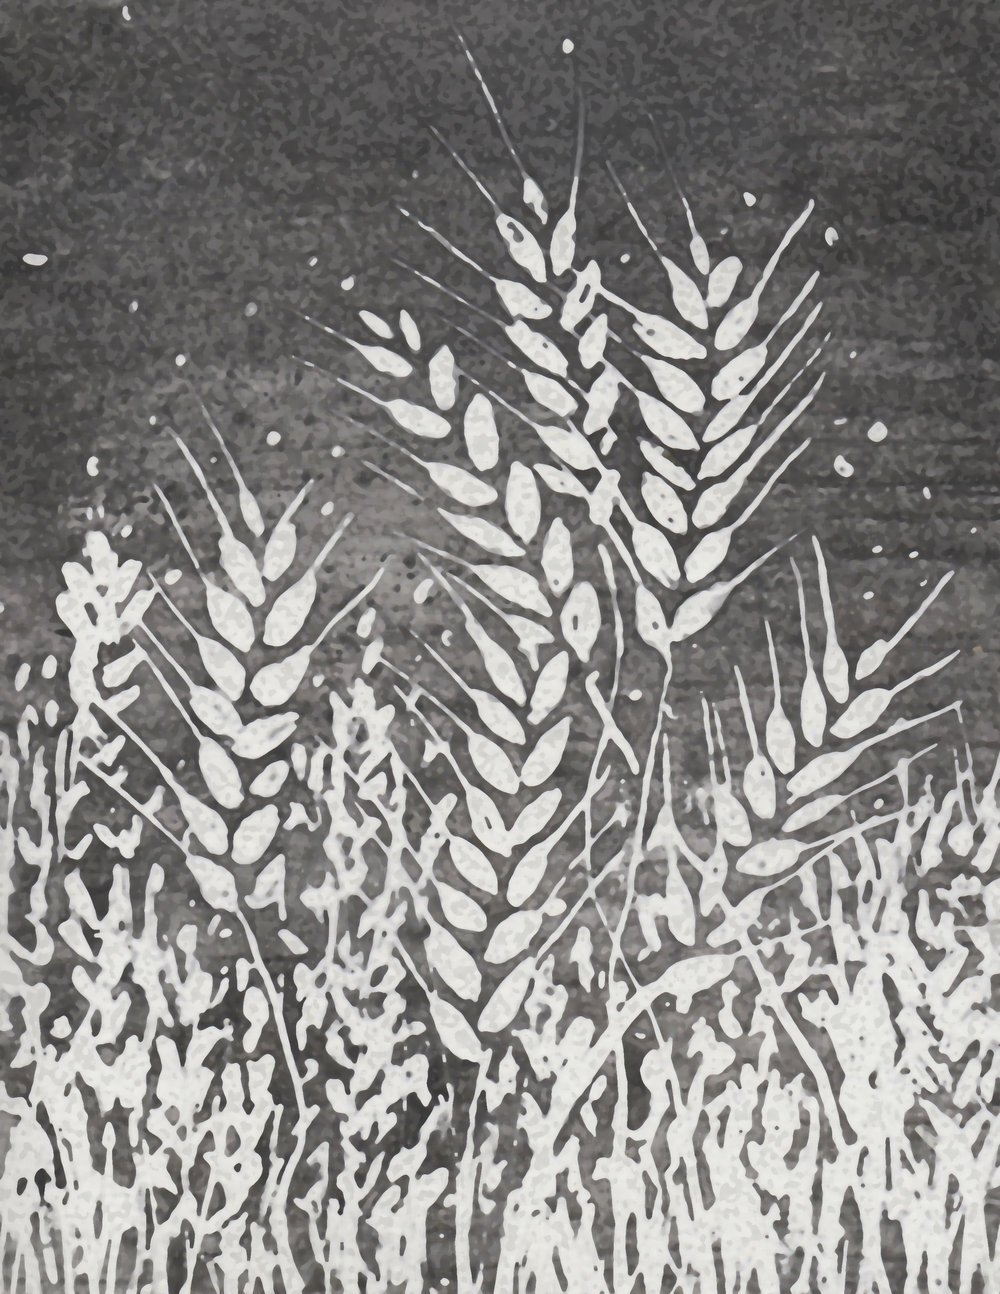 rug-wheat stalks bw 2.jpg